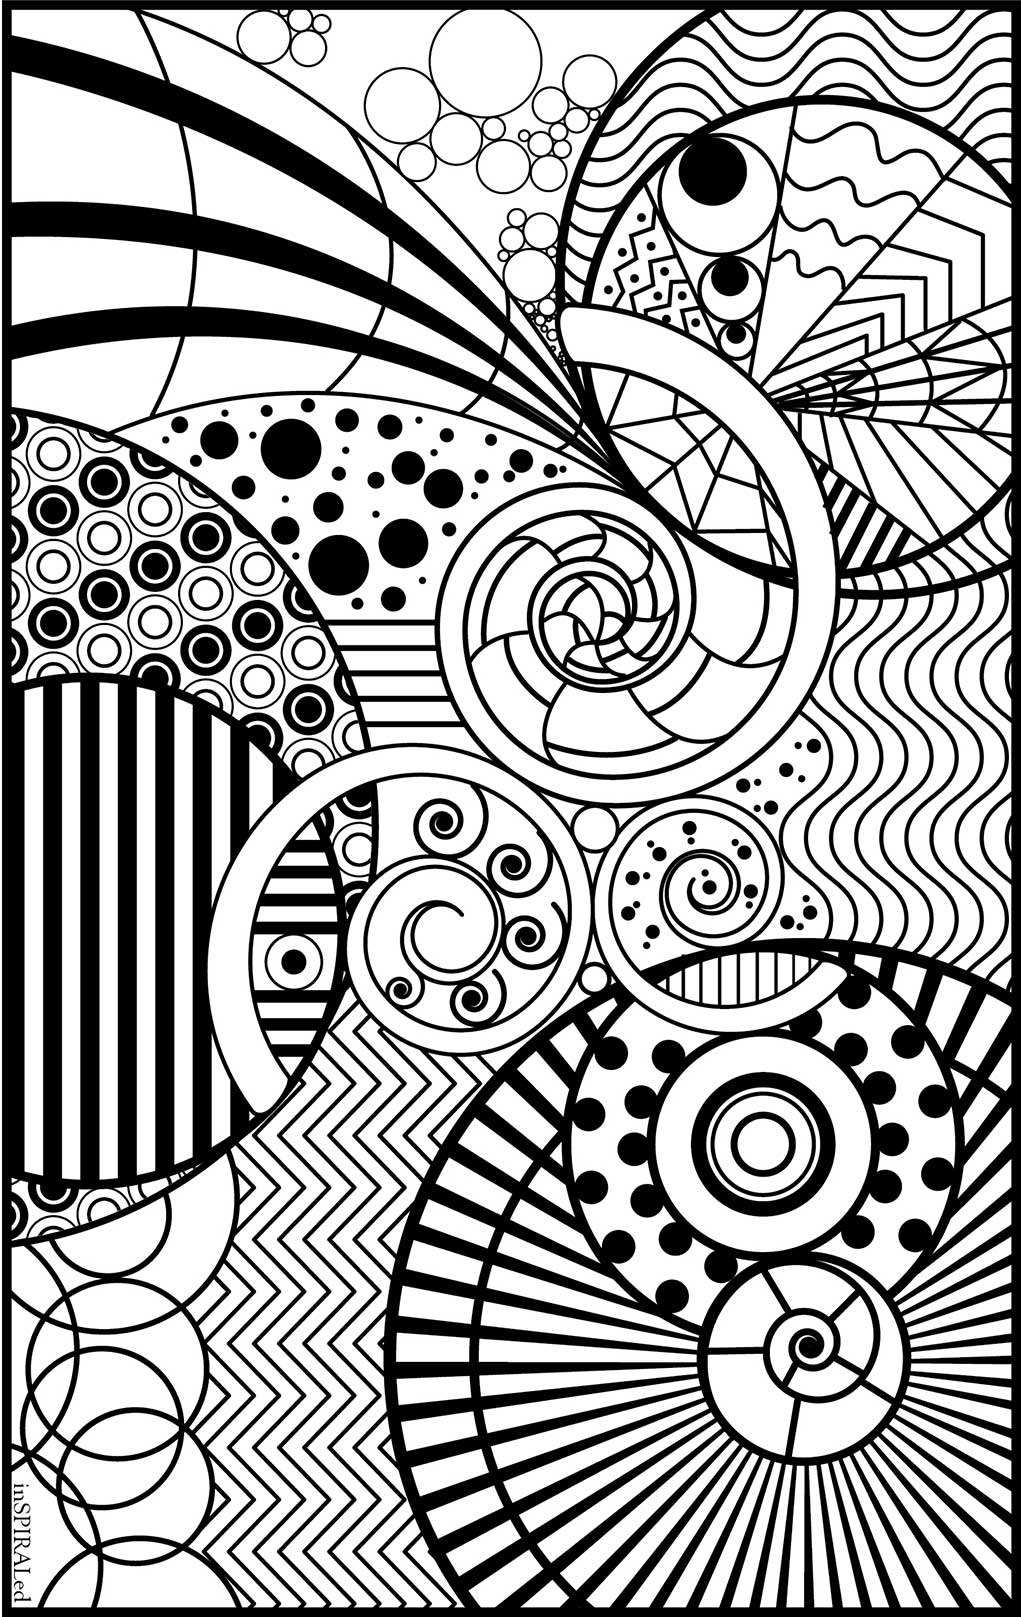 inspiraled adult colouring page inspiraled adult colouring page